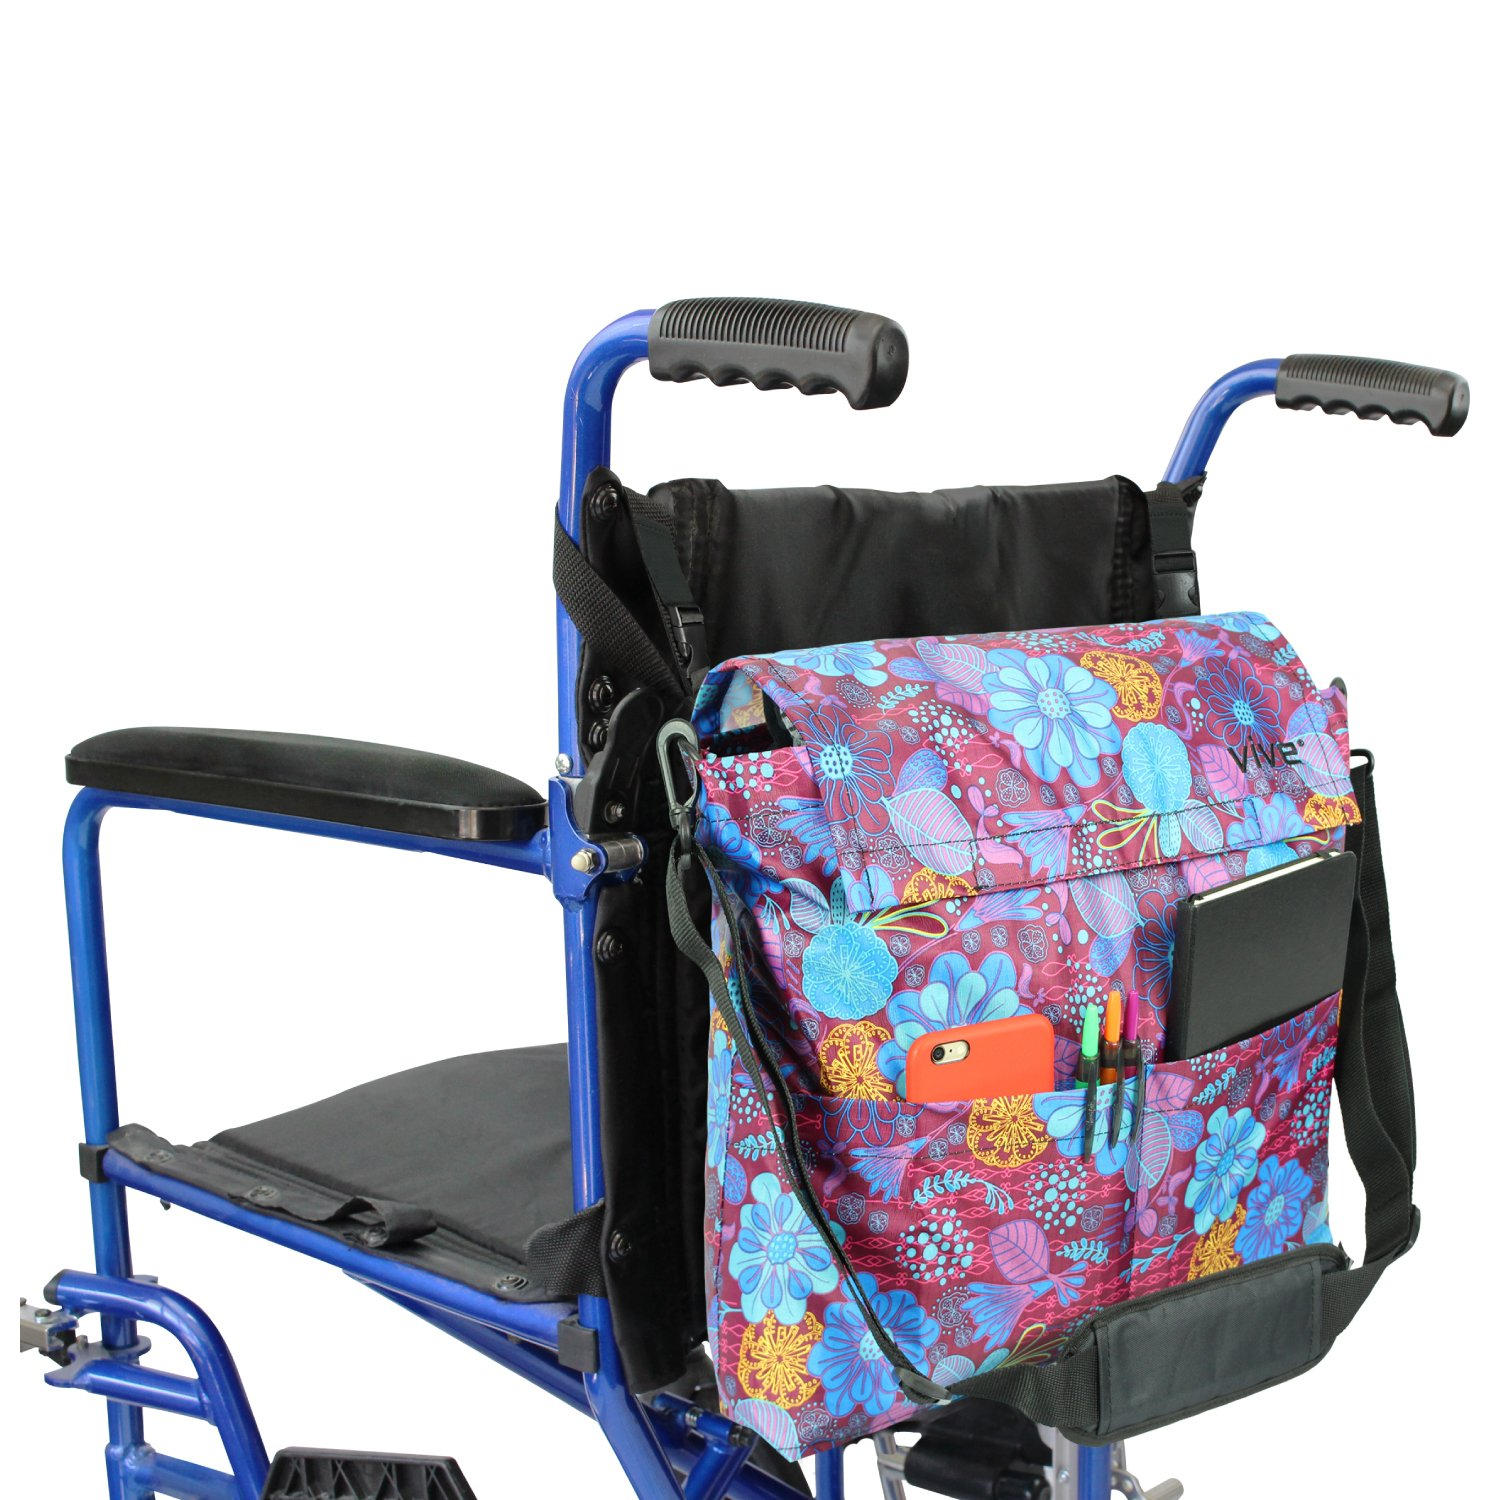 Wheelchair Bag by Vive - Accessory Storage Bag for Carrying Loose Items & Accessories - Travel Storage Tote & Backpack w/ Accessible Pouch & Pockets, Purple Floral